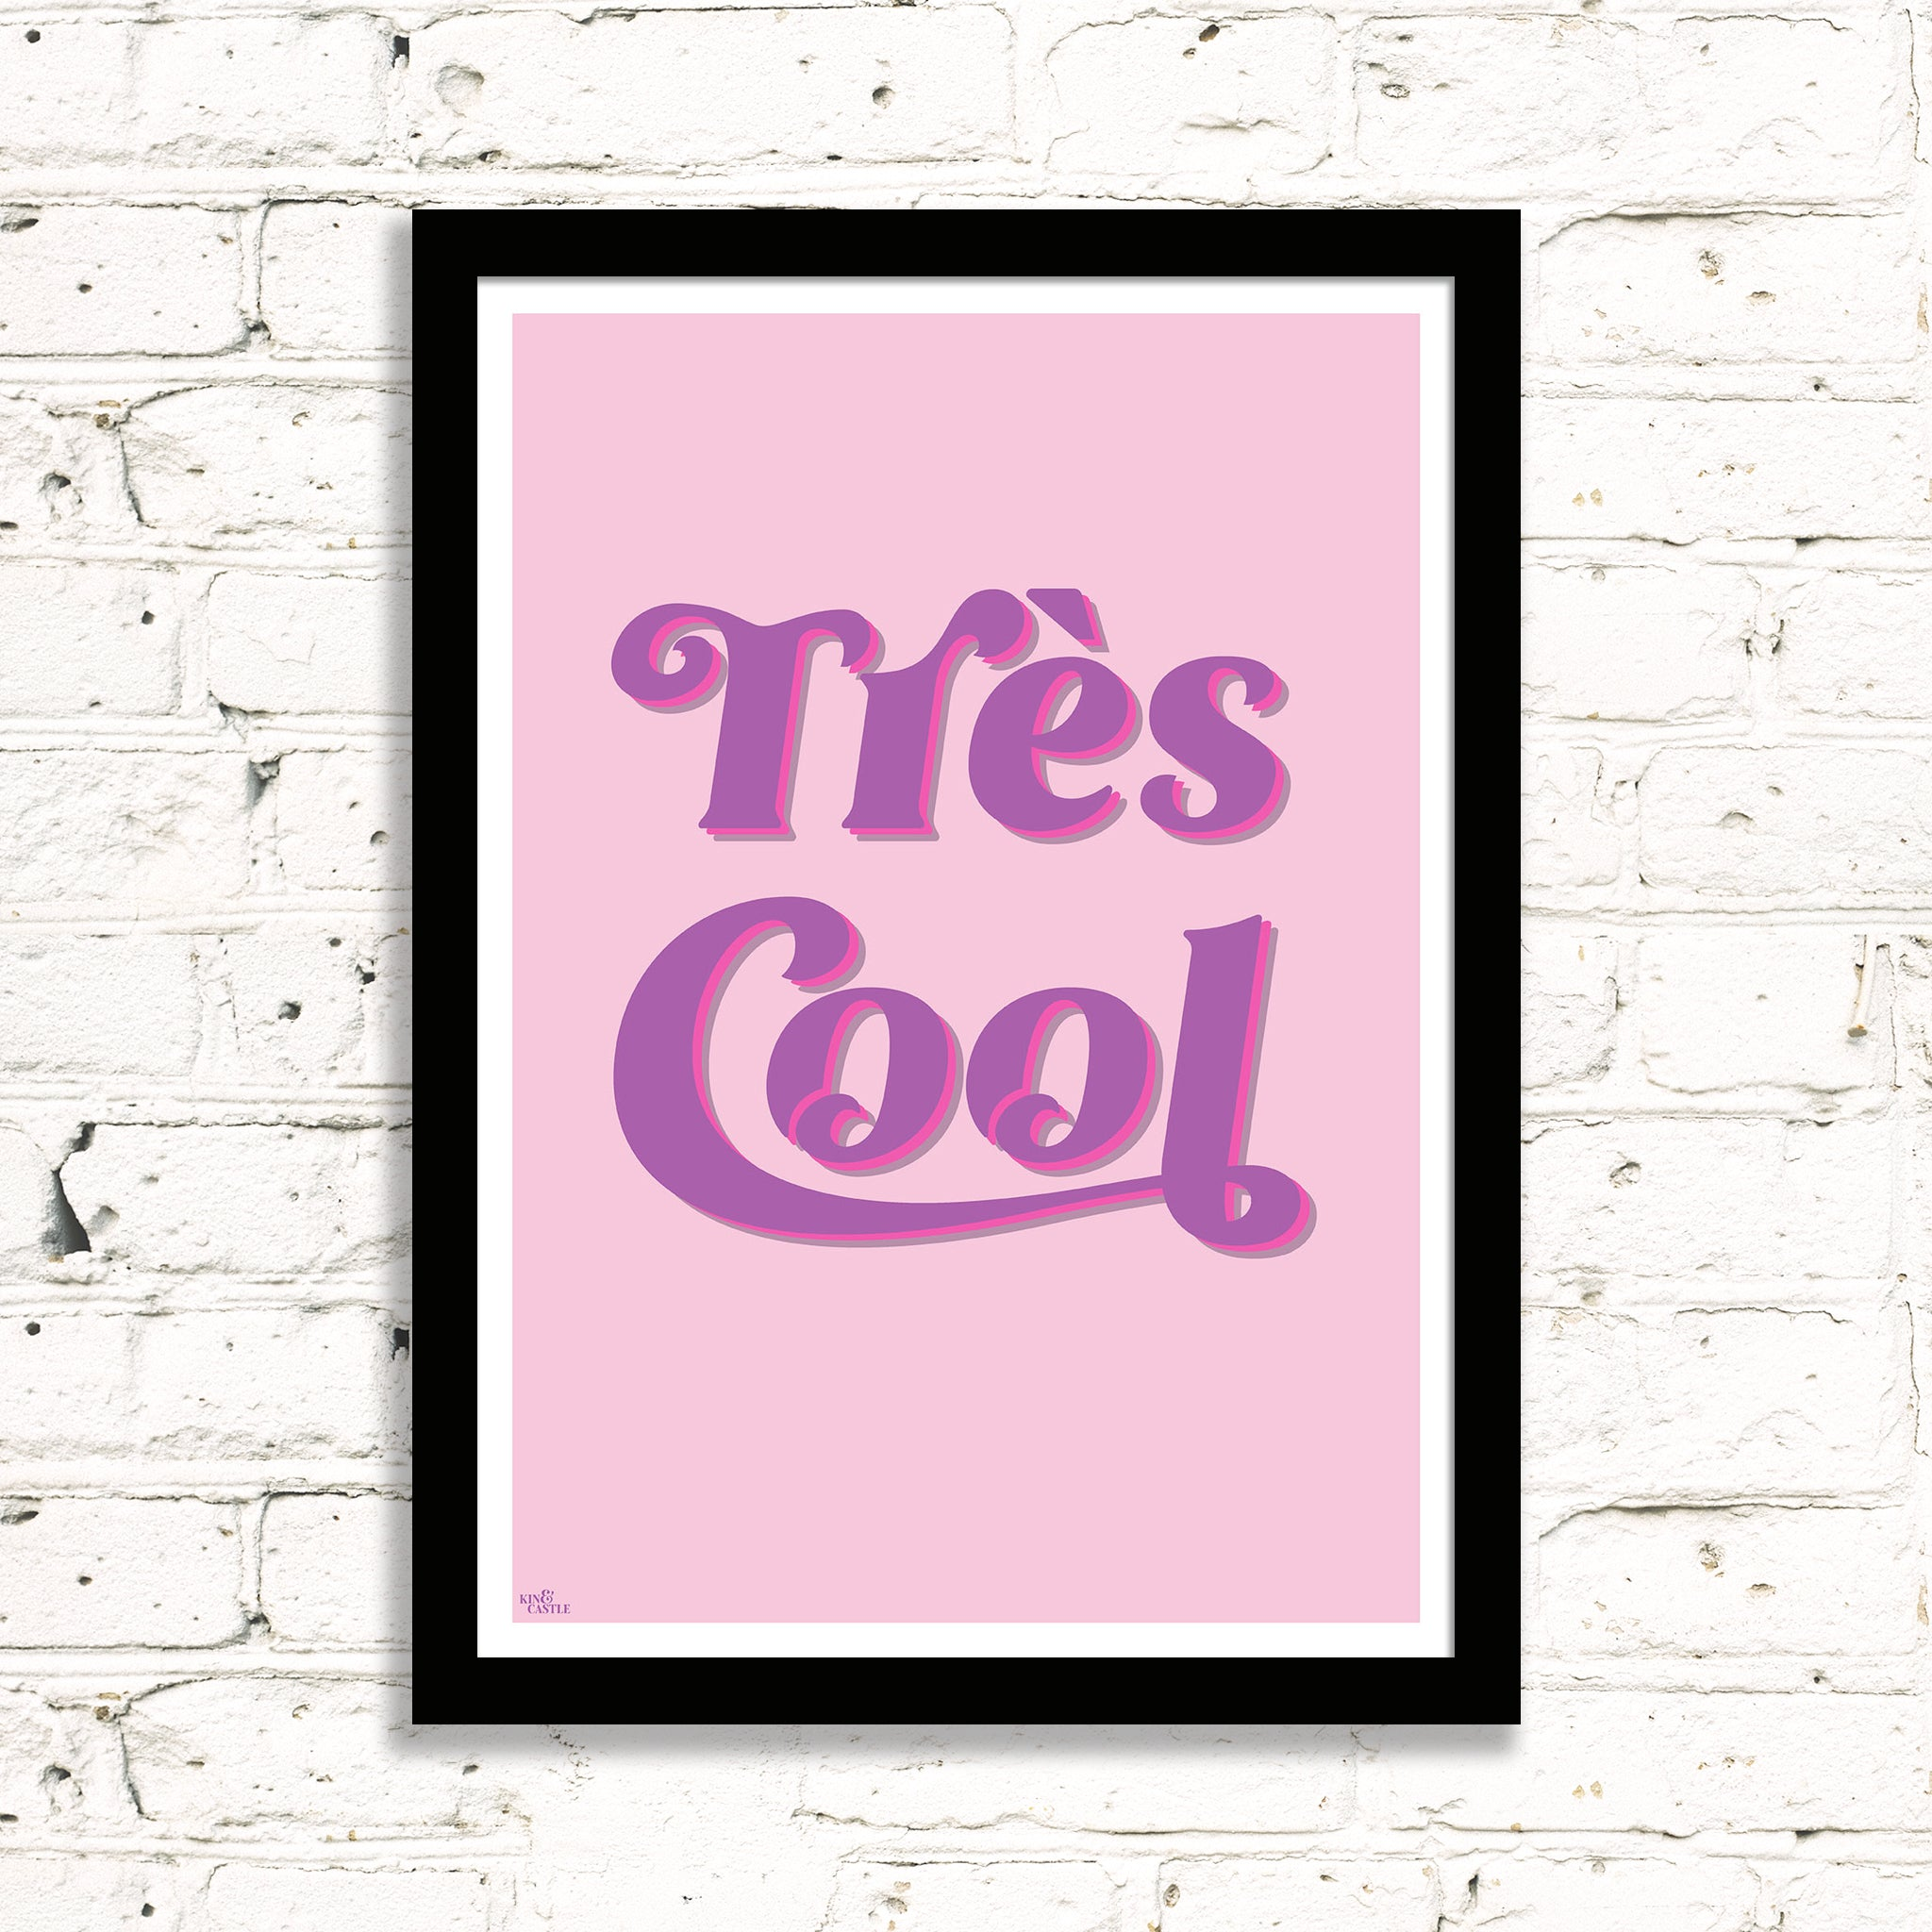 Très Cool Art Print (bubblegum pinks)